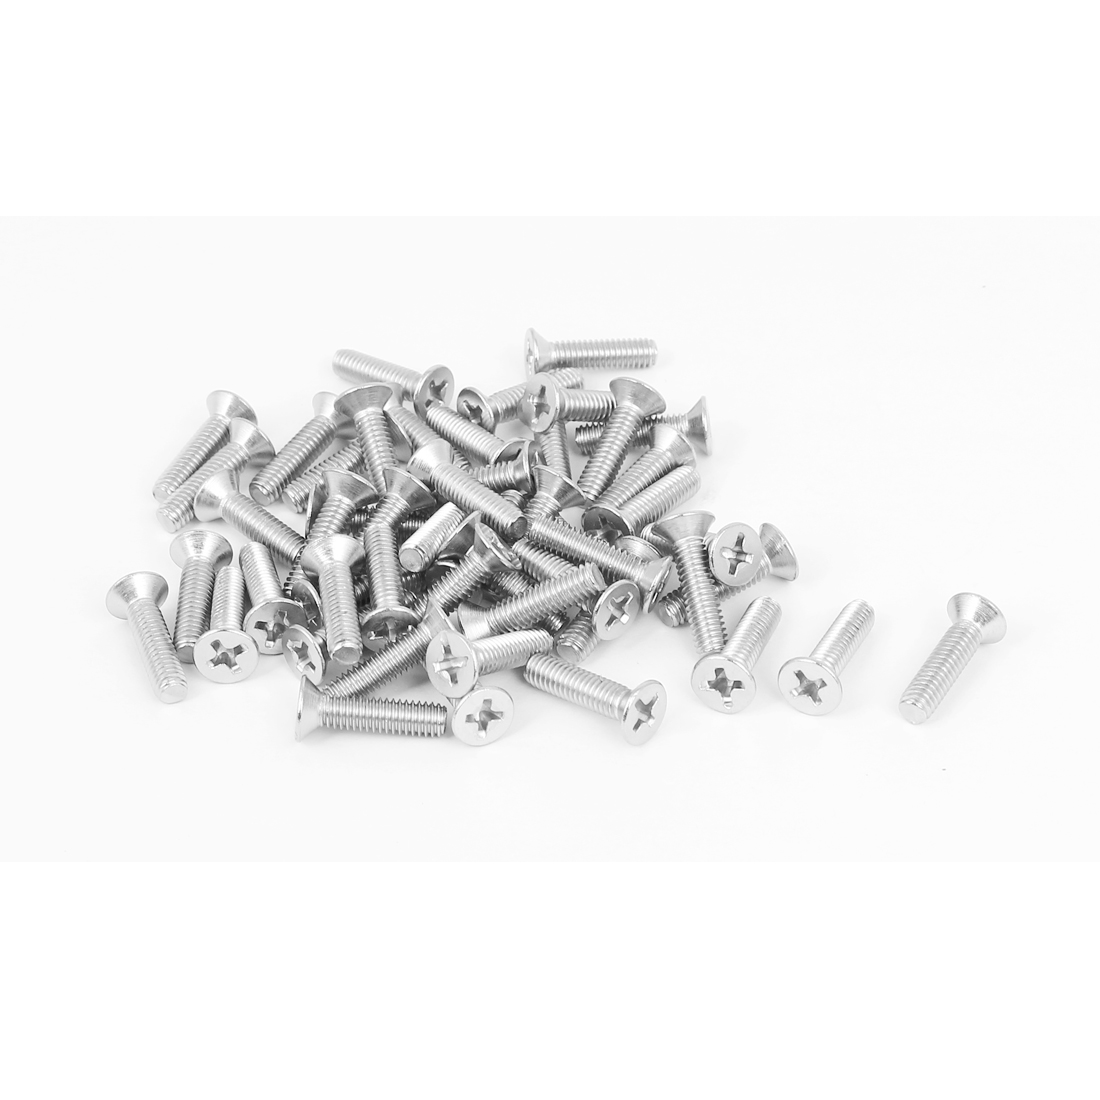 M4x16mm Stainless Steel Phillips Flat Countersunk Head Screws 50pcs